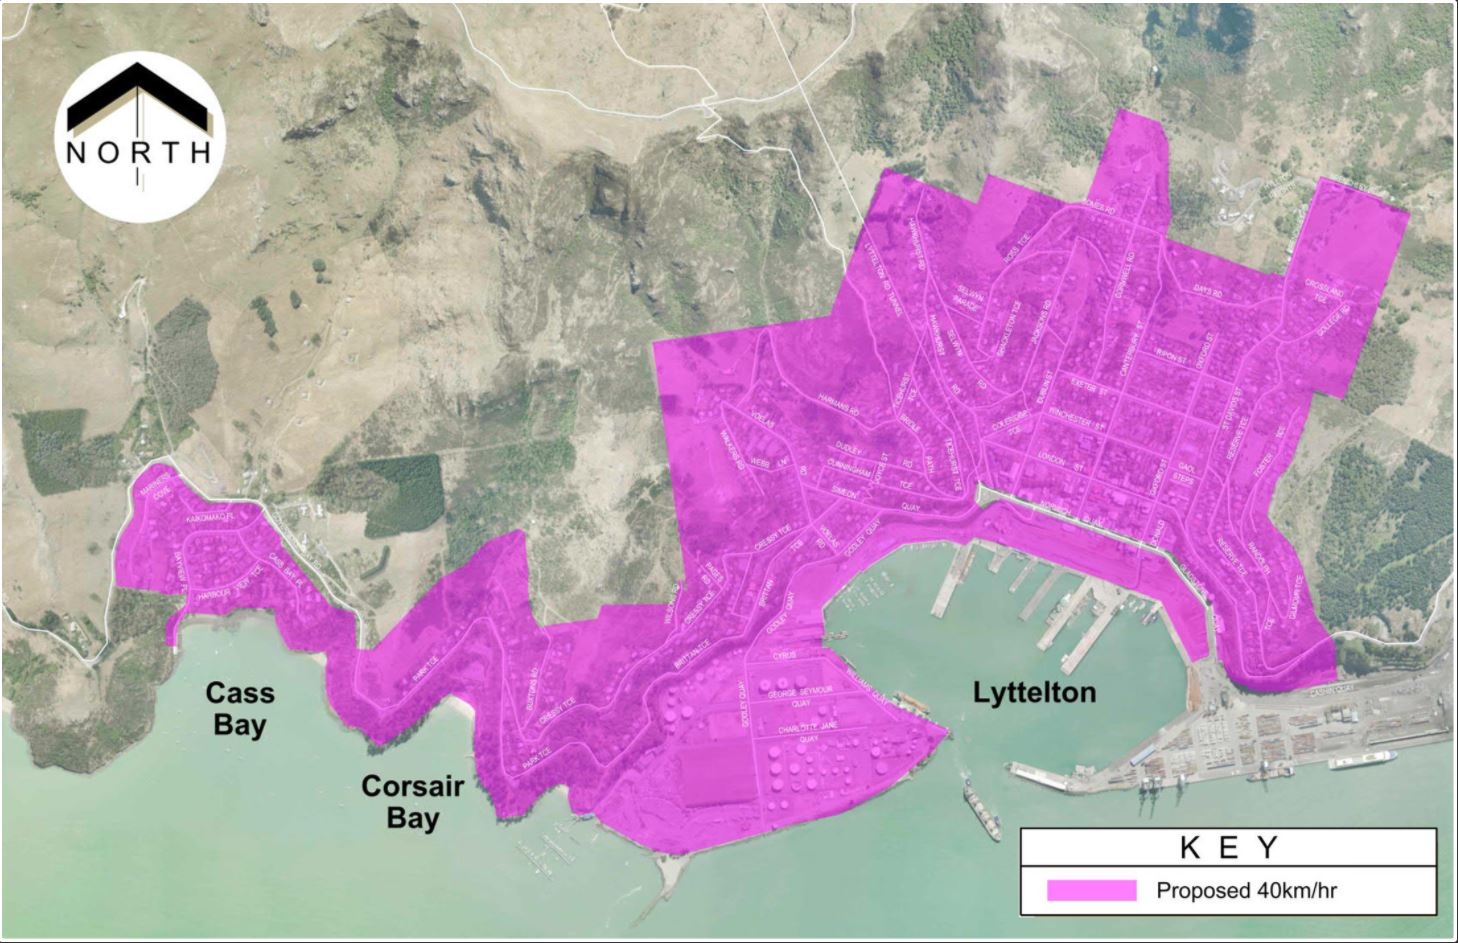 The Lyttelton, Corsair Bay and Cass Bay speed review area. Image: Newsline